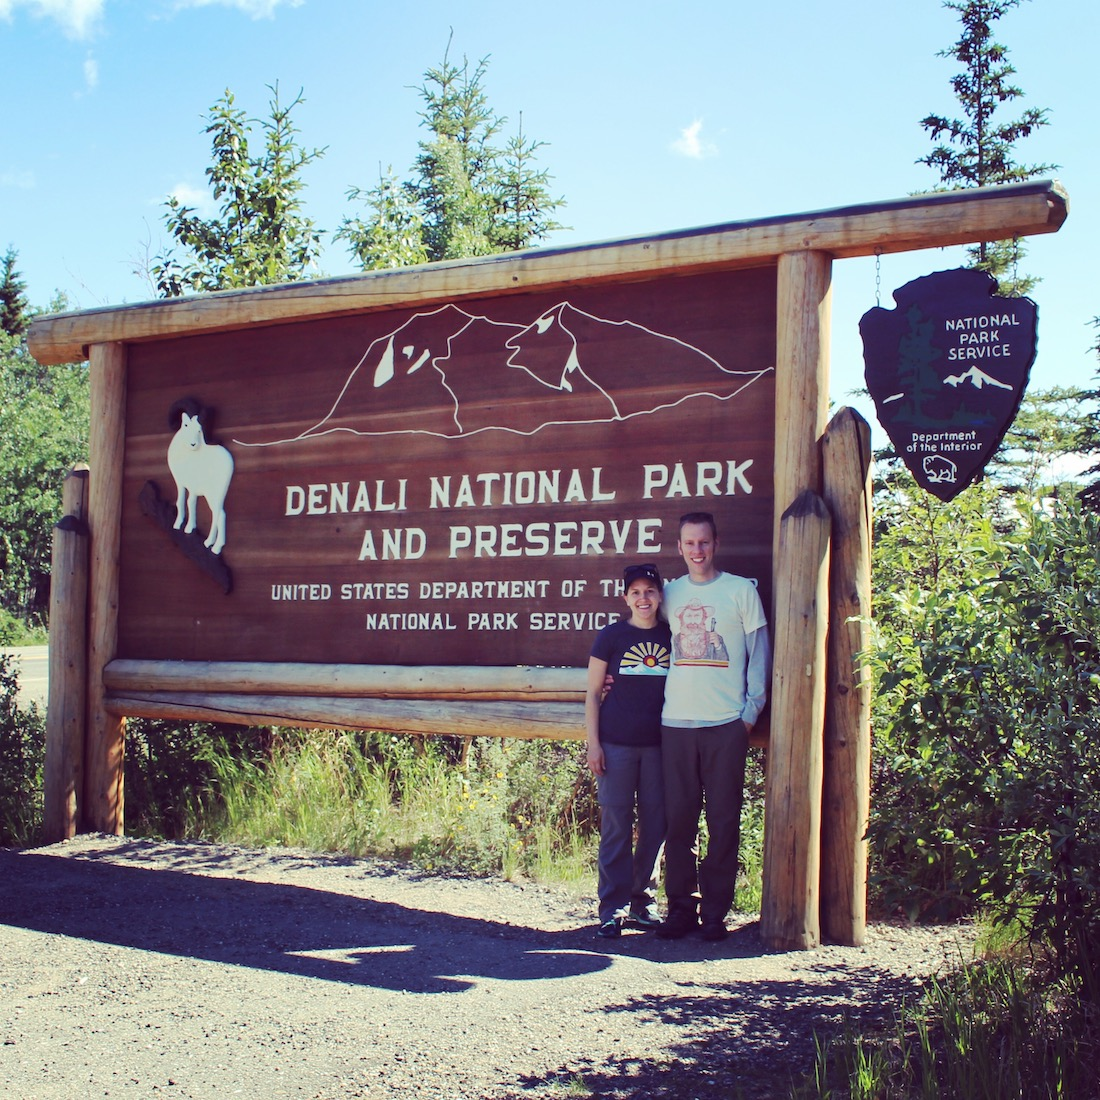 Park Chasers in front of the Denali National Park entrance sign.